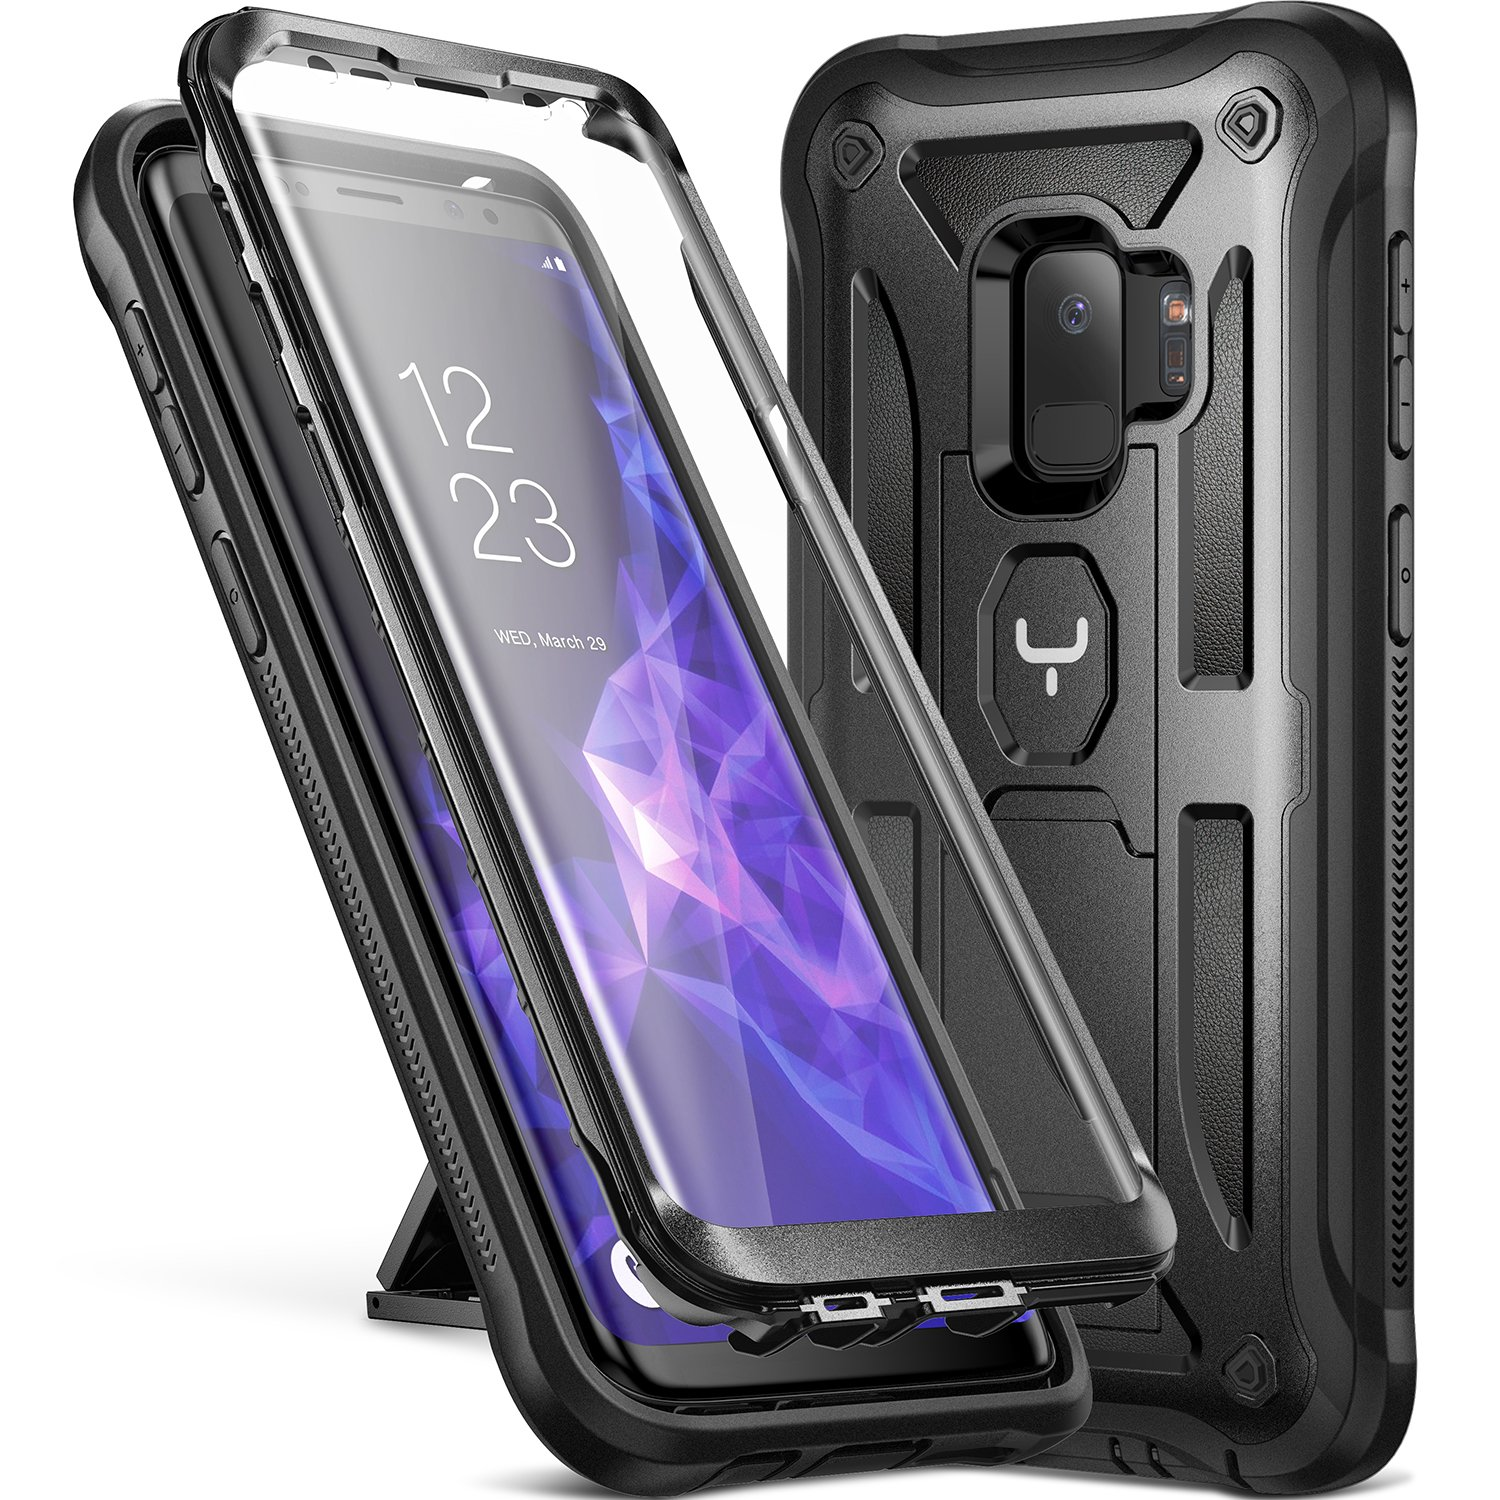 hot sale online 29e1c 1ac28 Galaxy S9 Case, YOUMAKER Heavy Duty Protection Kickstand with Built-in  Screen Protector Shockproof Case Cover for Samsung Galaxy S9 5.8 inch (2018  ...